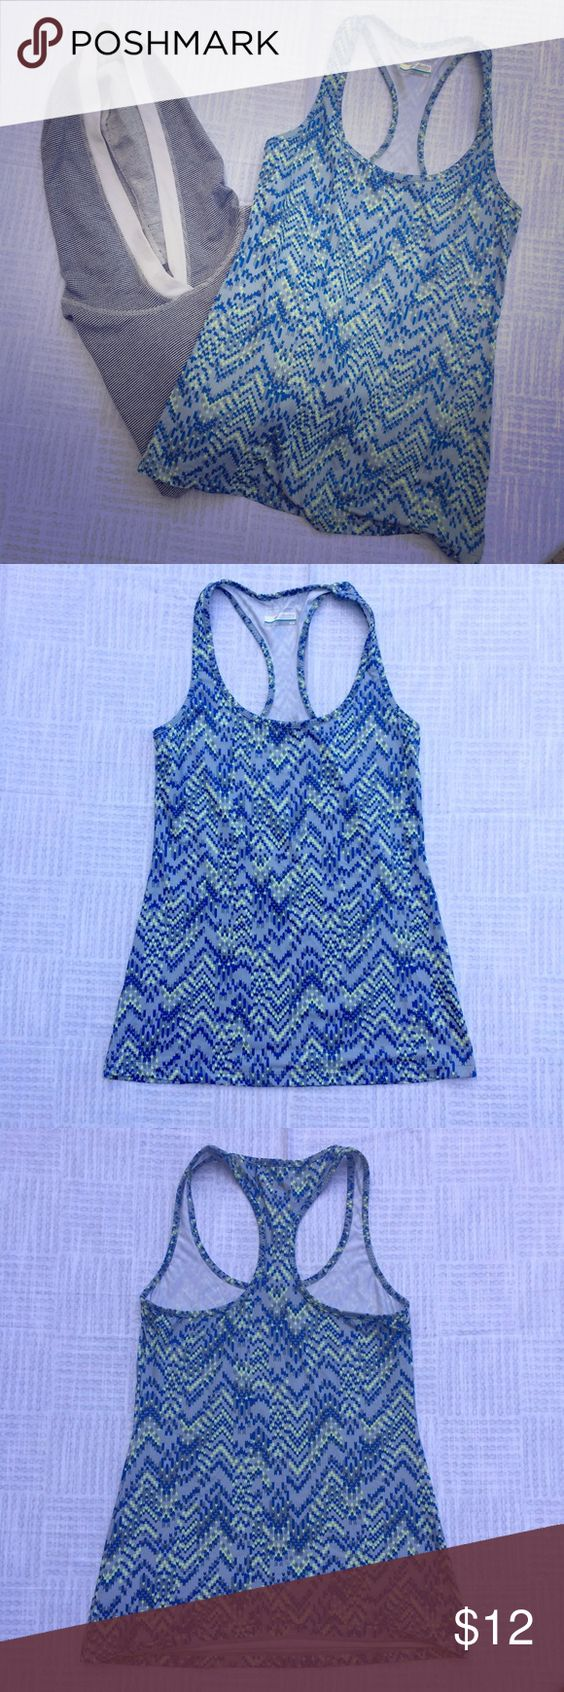 Columbia Sportswear athletic top! Grey top with blue and yellow print.  In great condition! Perfect for all athletic needs! Light moisture wicking material! Columbia Sportswear Tops Tank Tops